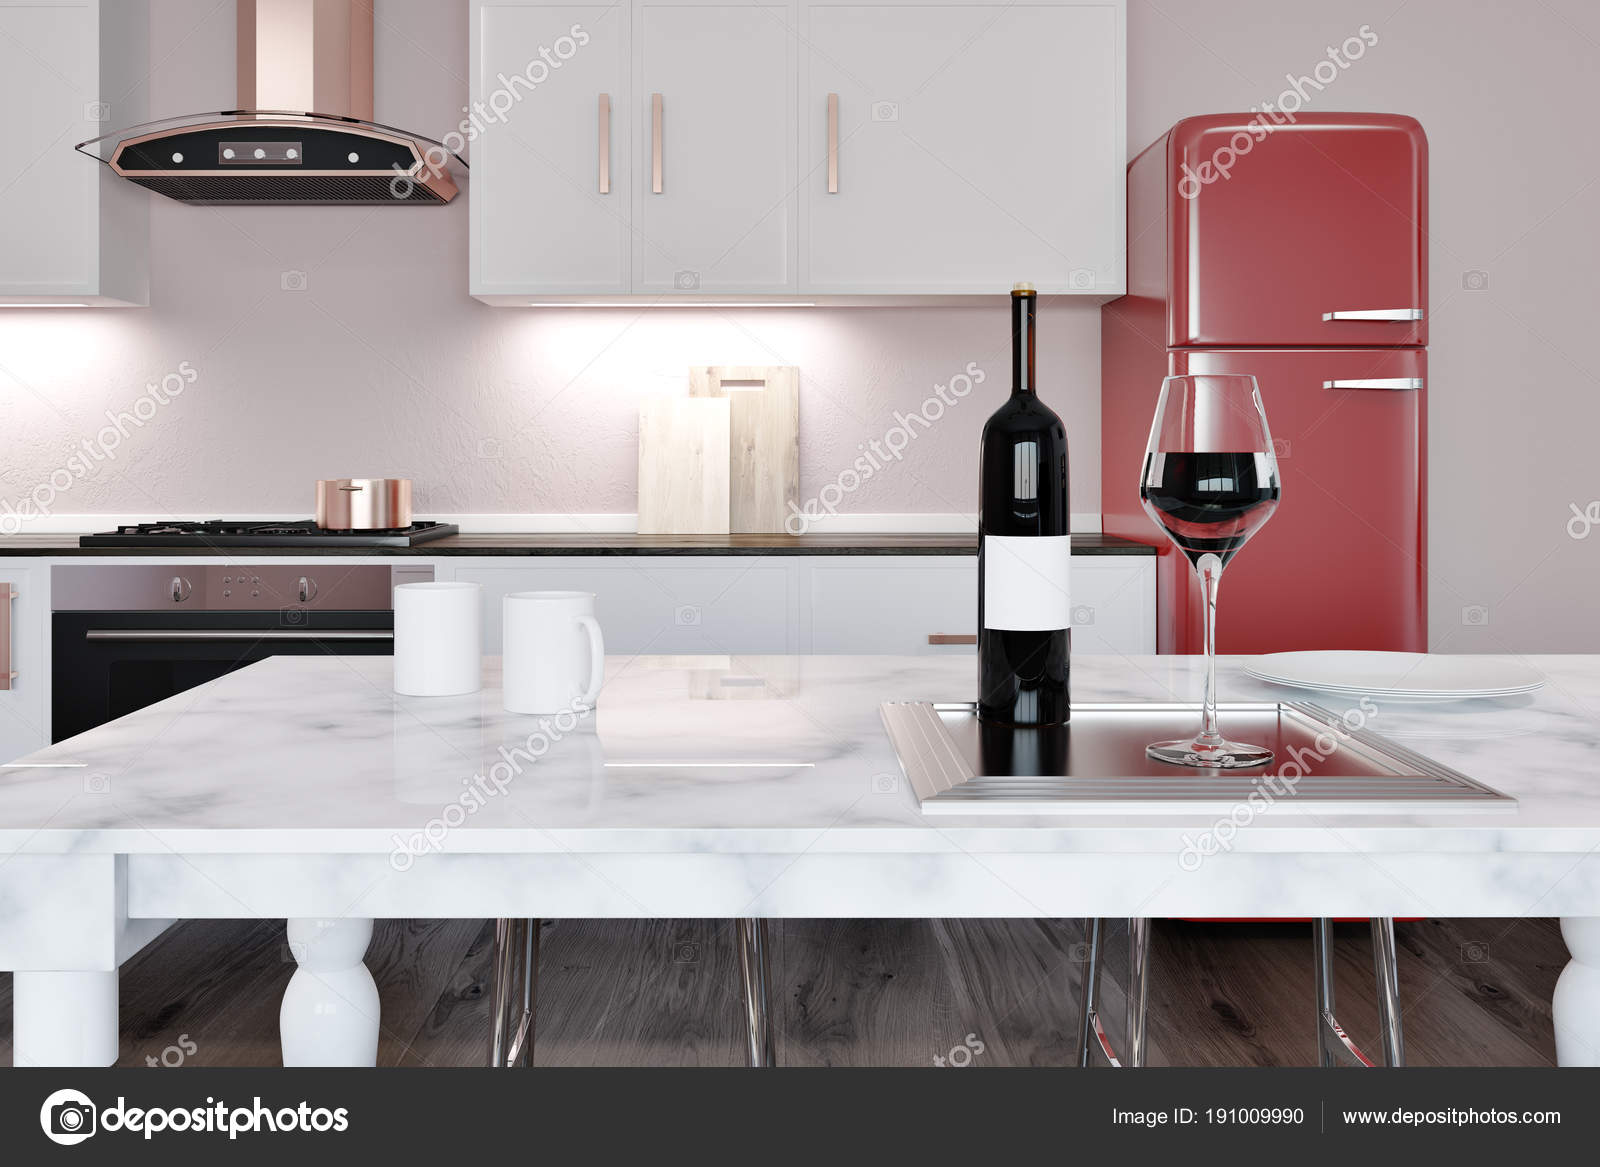 White Marble Island White Marble Kitchen Island Red Fridge Stock Photo